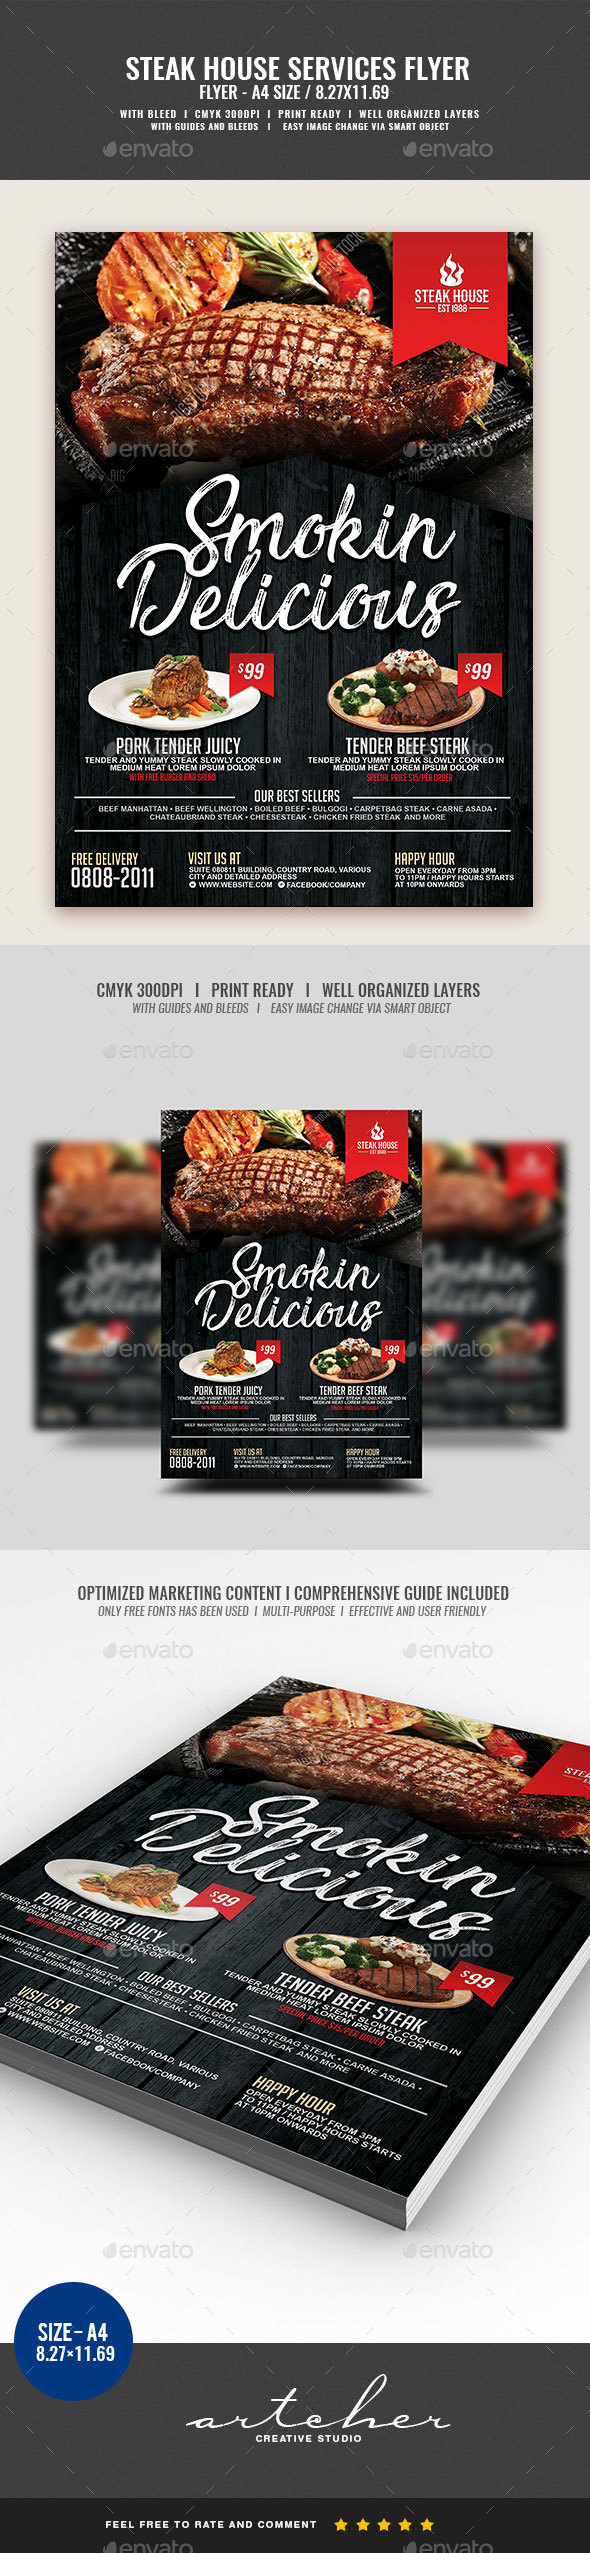 Steakhouse Restaurant Flyer v2